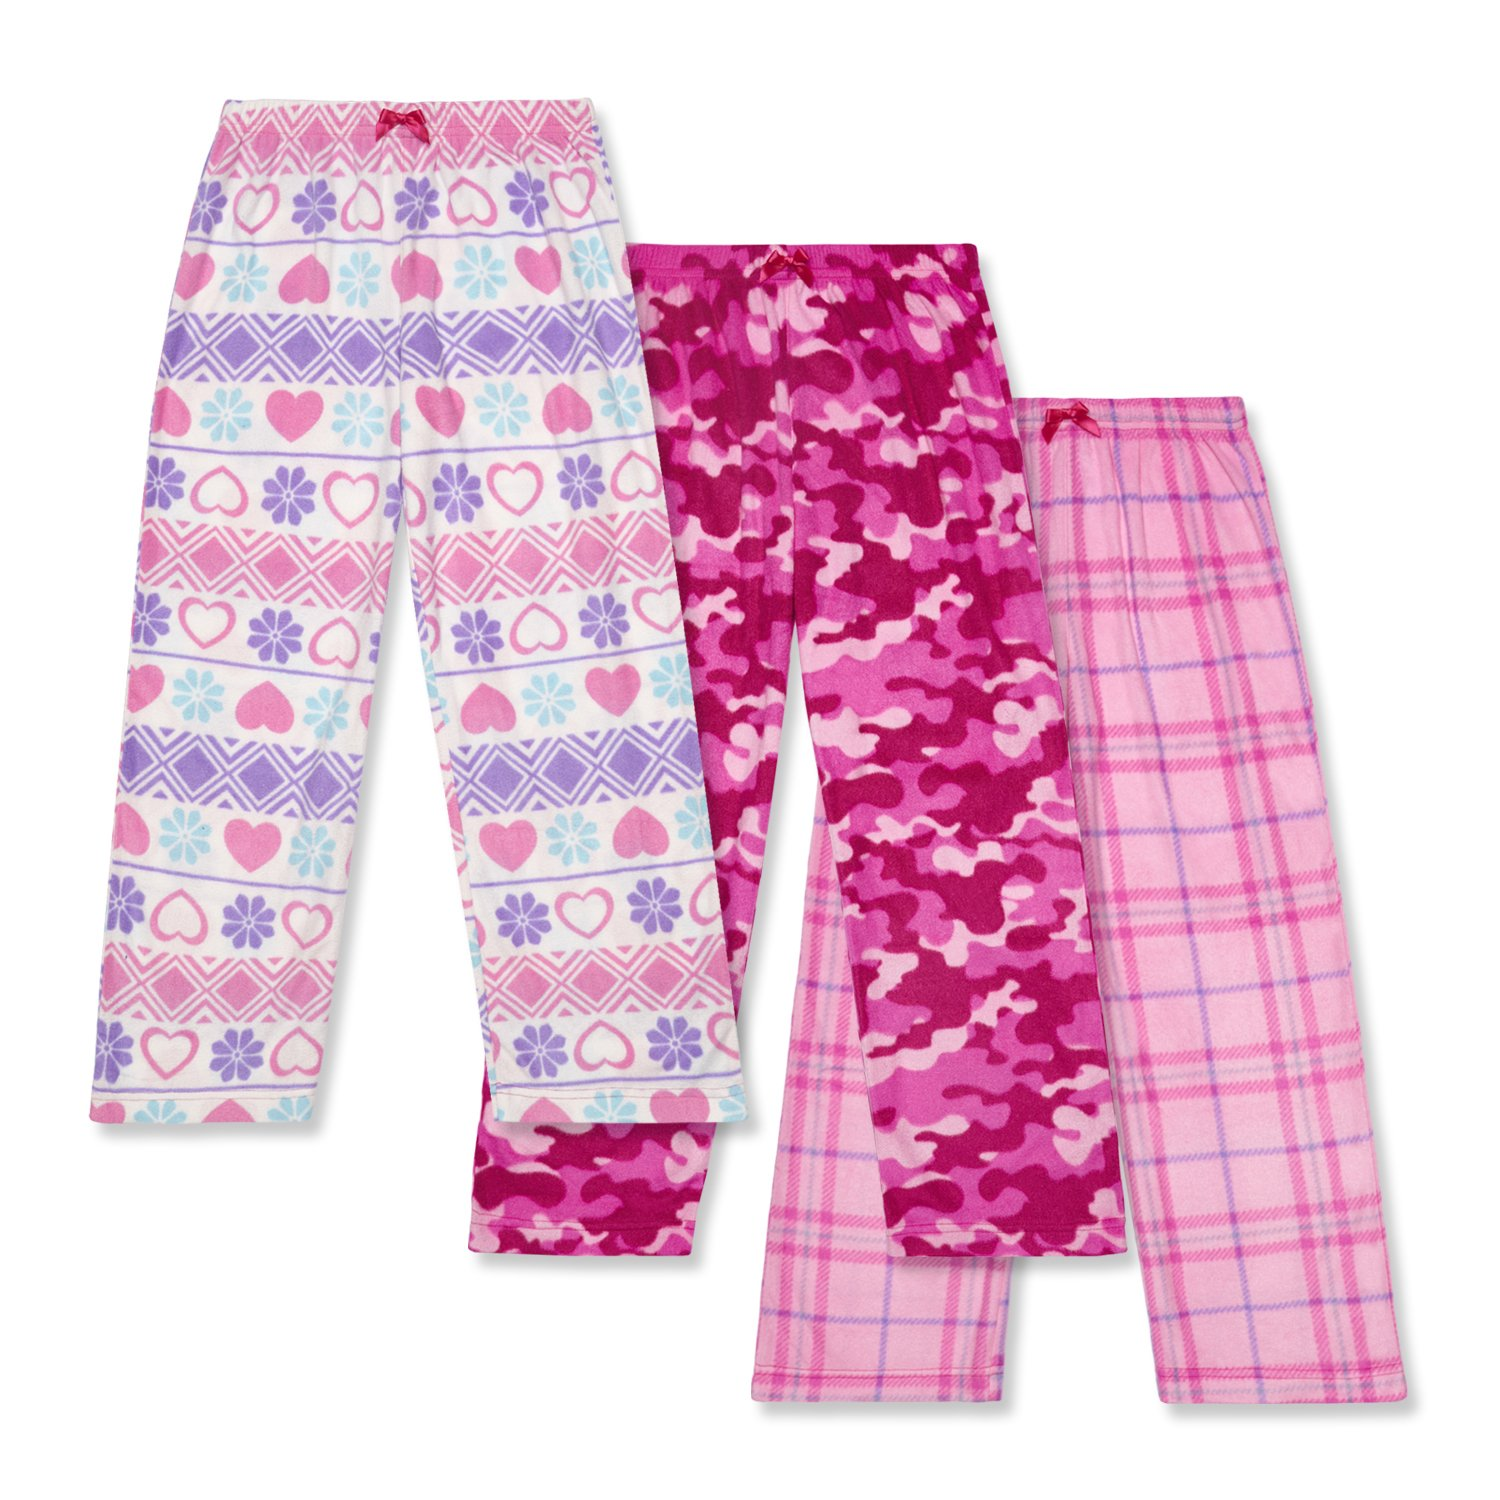 9e7505843f1d Mad Dog Girls Fleece Sleep Pants - Packs of 3 Assorted Designs and Sizes